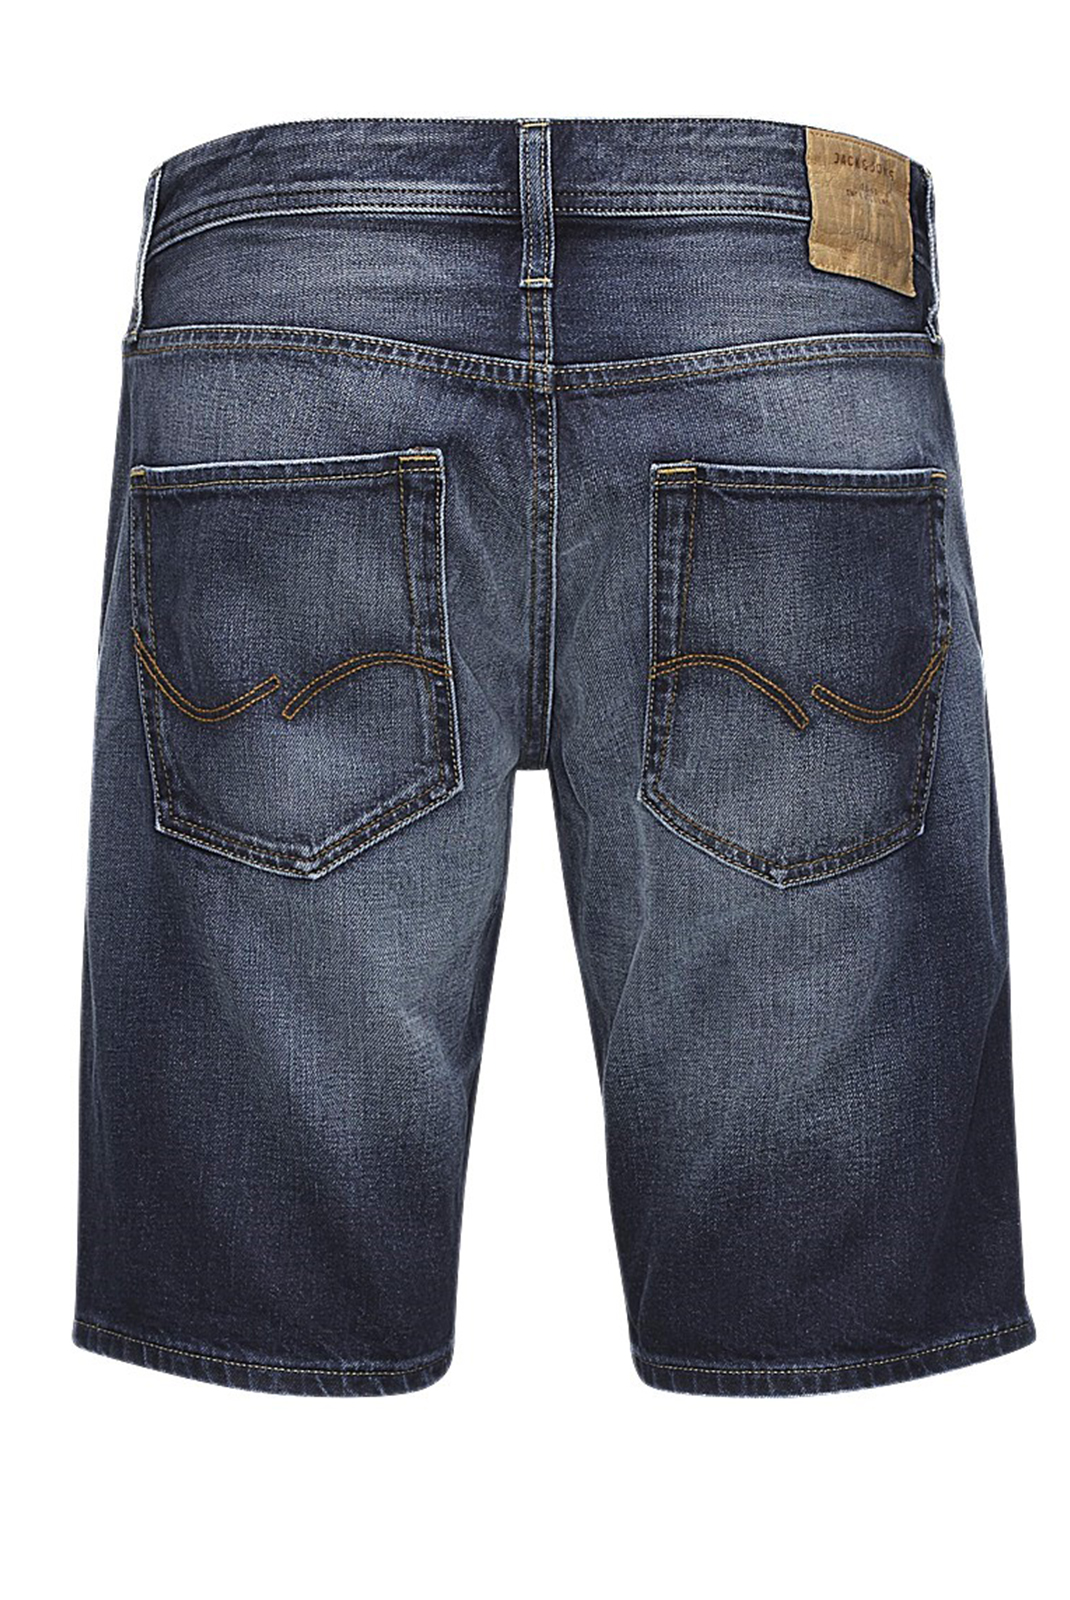 Shorts & Bermudas  Jack & Jones RICK ORIGINAL SHORTS GE 520 BLUE DENIM